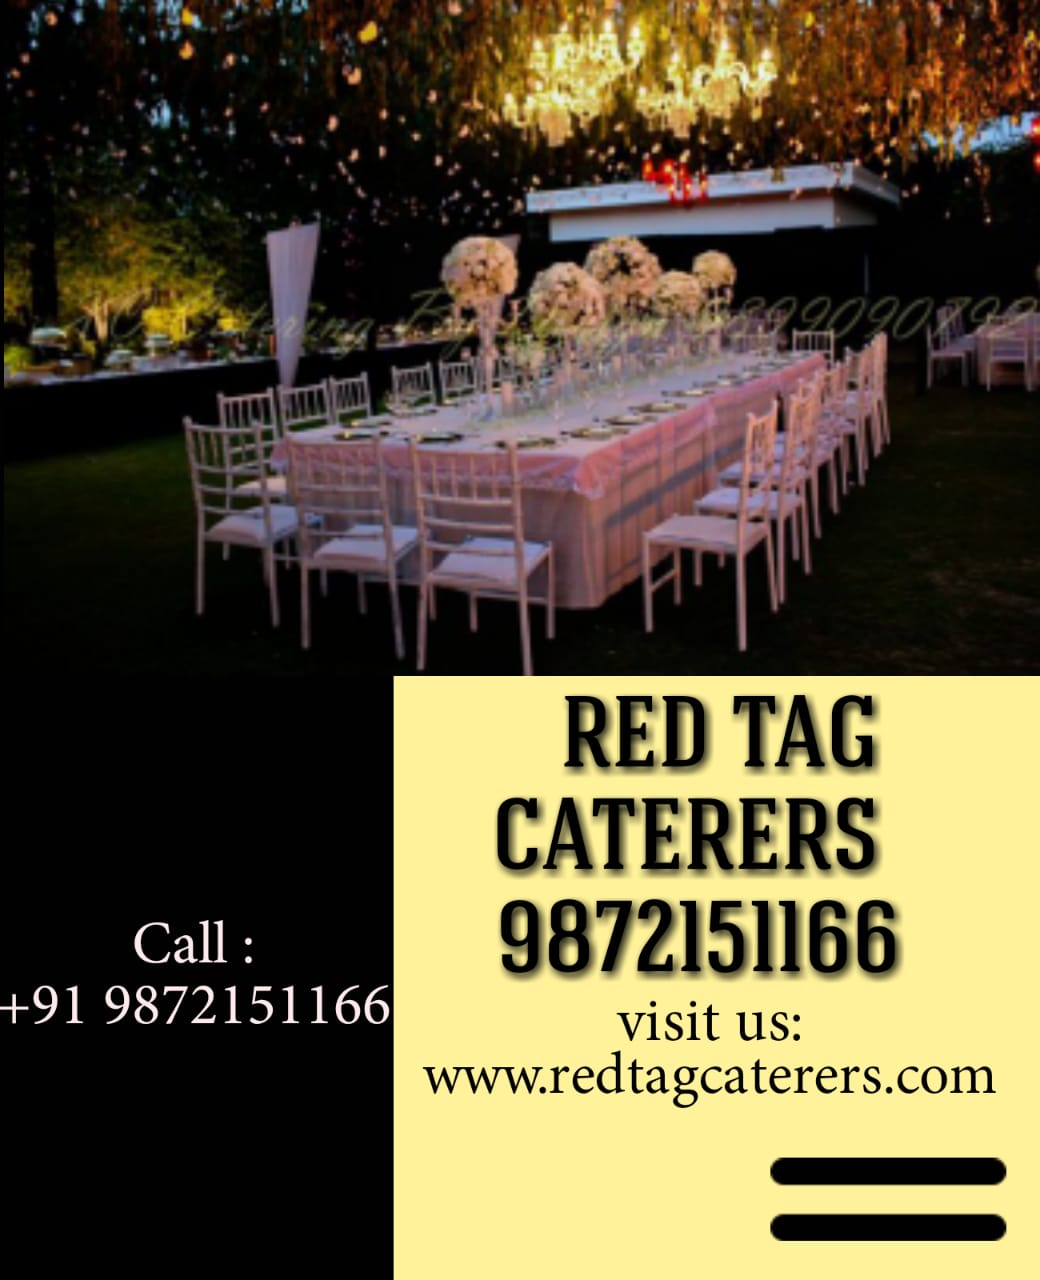 Red Tag Caterers, best catering service in mohali, top caterers in mohali, indoor and outdoor catering in mohali, corporate caterers in mohali